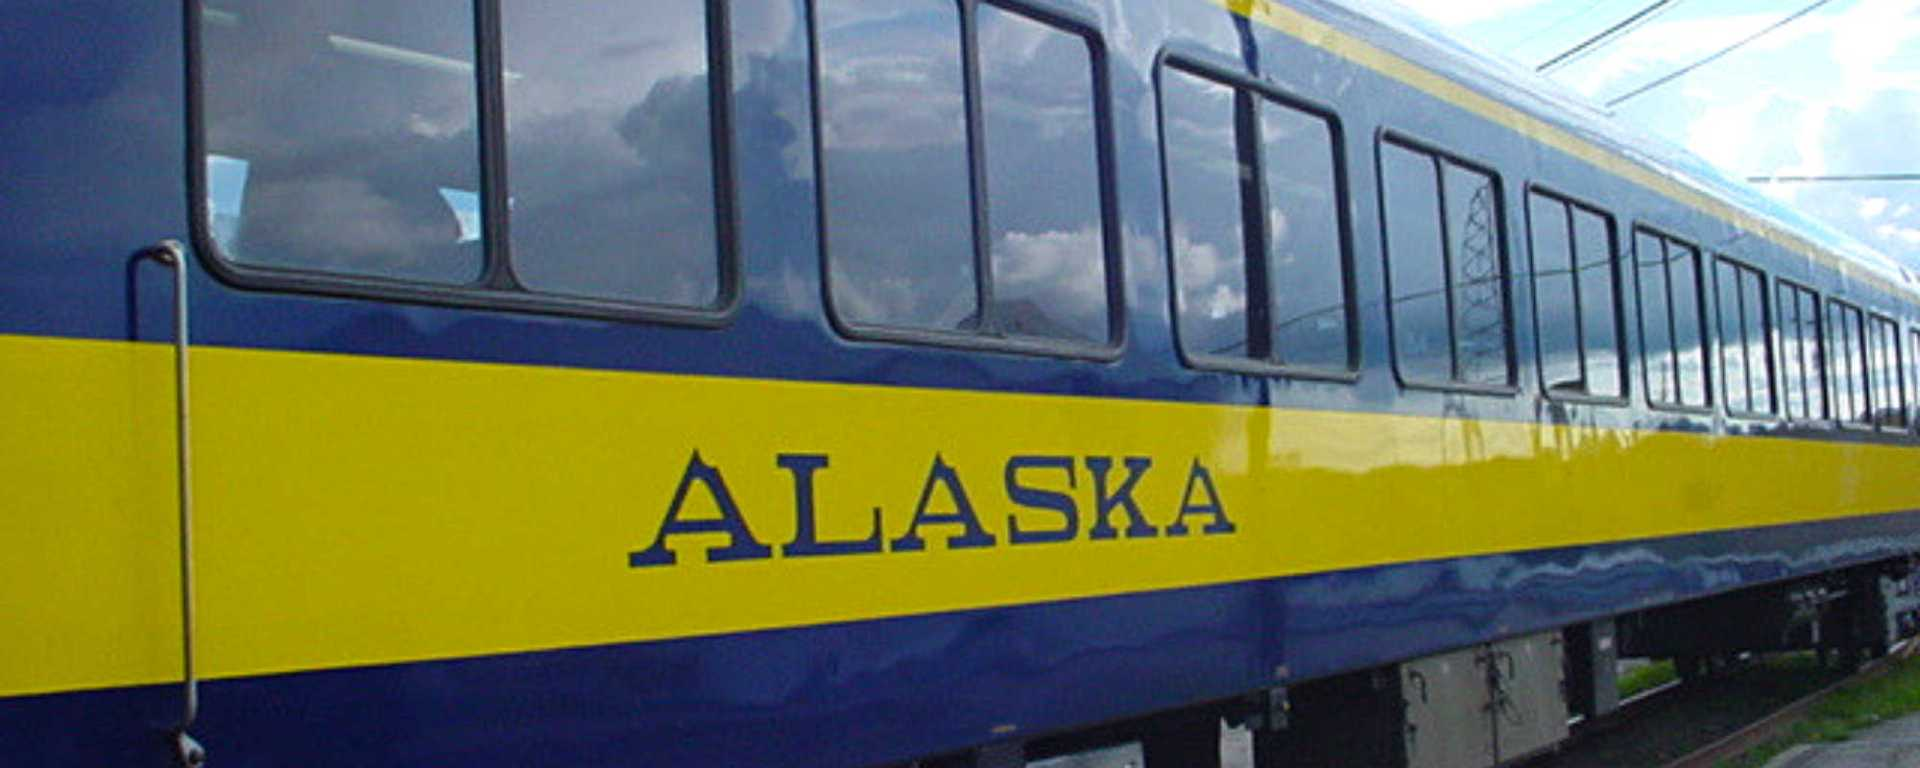 What is it like to visit Alaska?